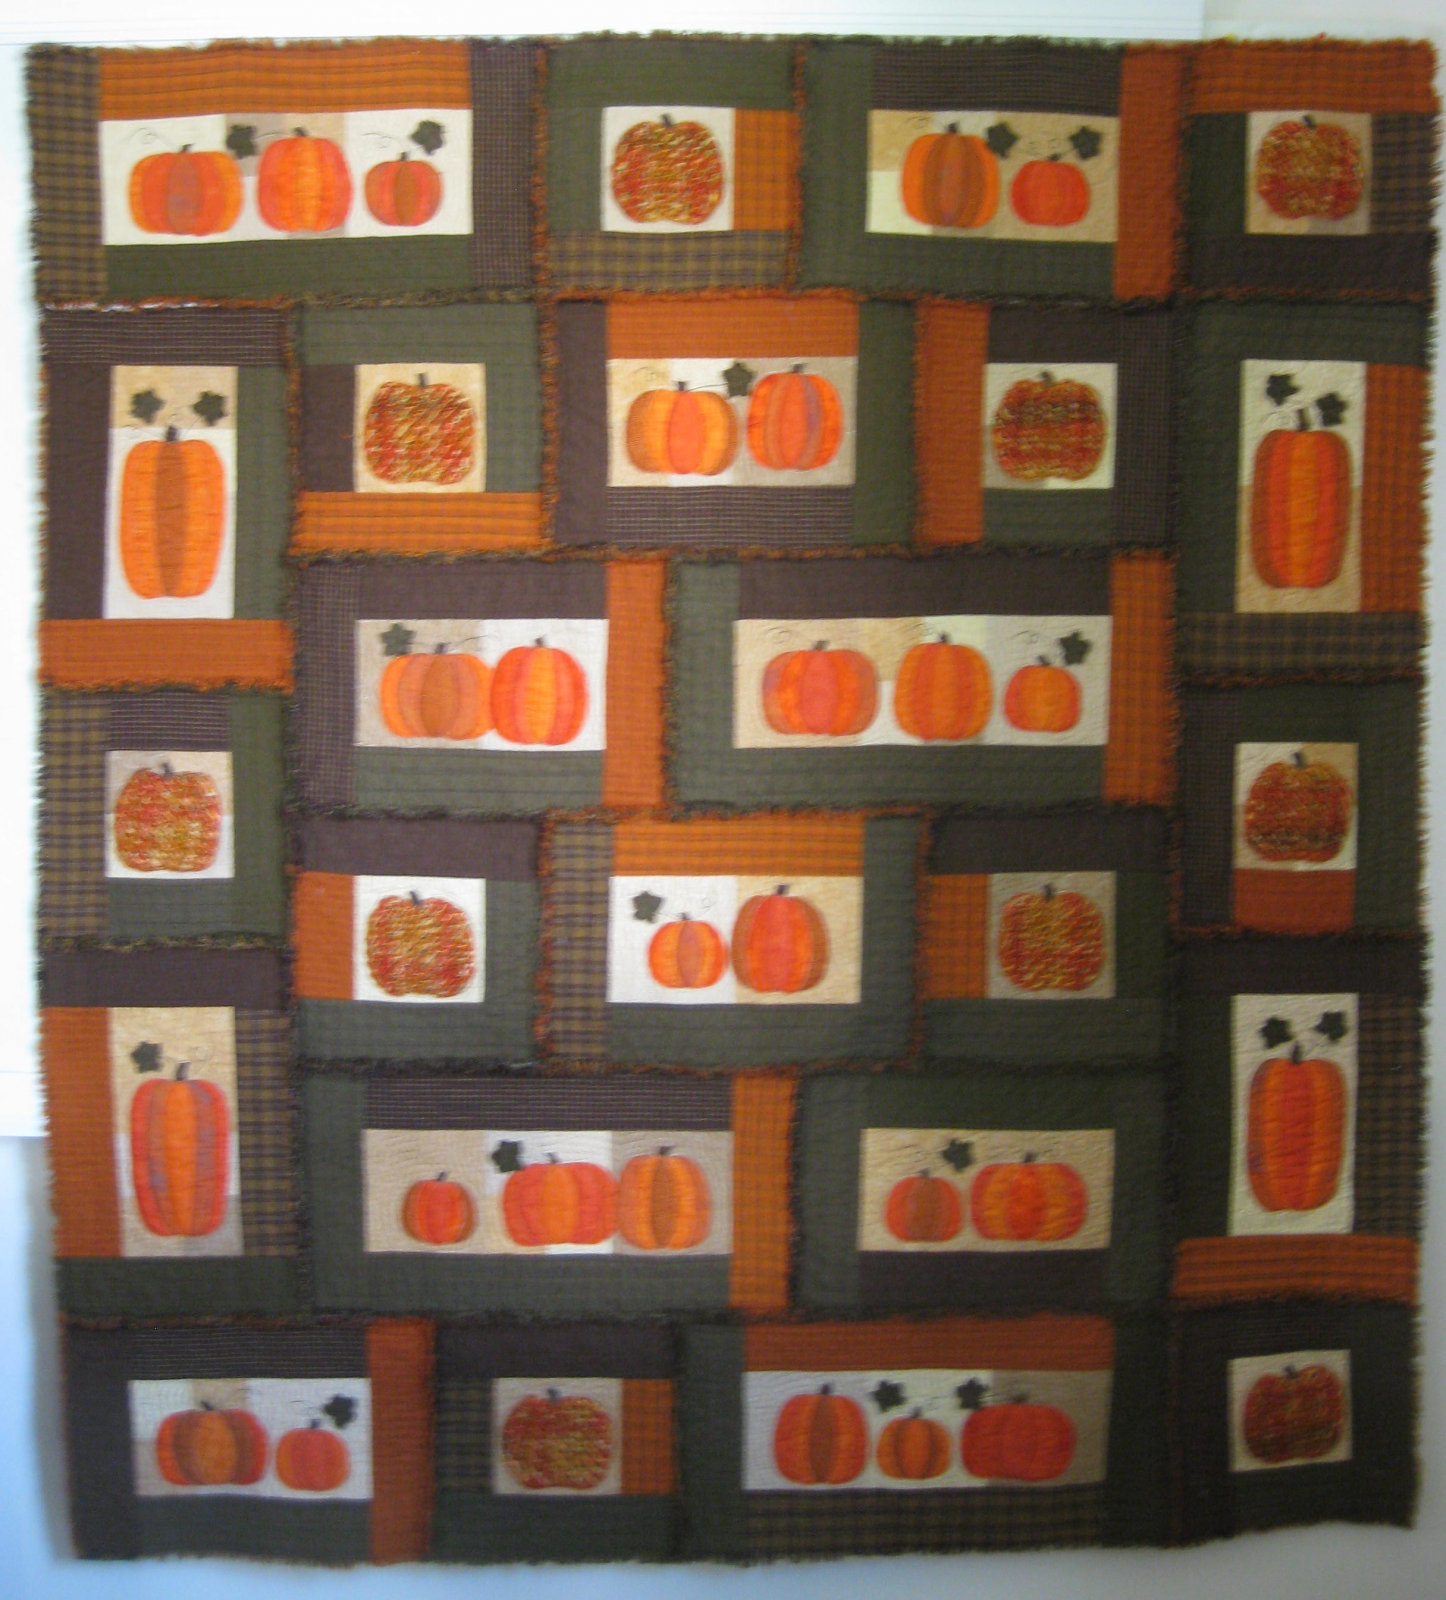 Quilted projects designed by The Quilt Peddler LLC